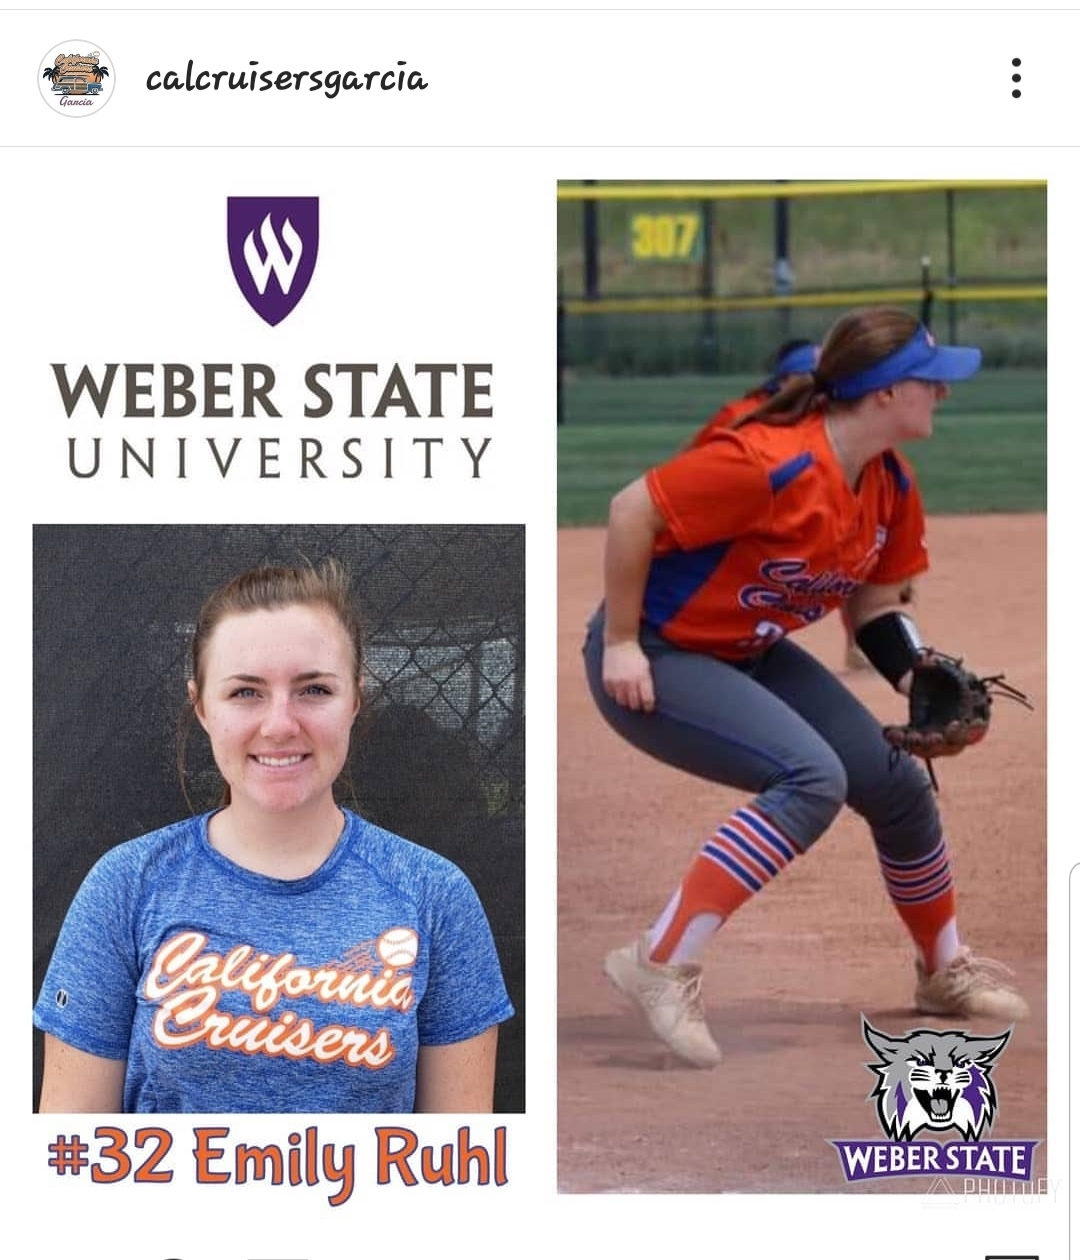 #32 EMILY RUHL   Highlight Video: Coming Soon  Grad Year: 2020  Position(s): 3B  B/T: R/R  College: Weber